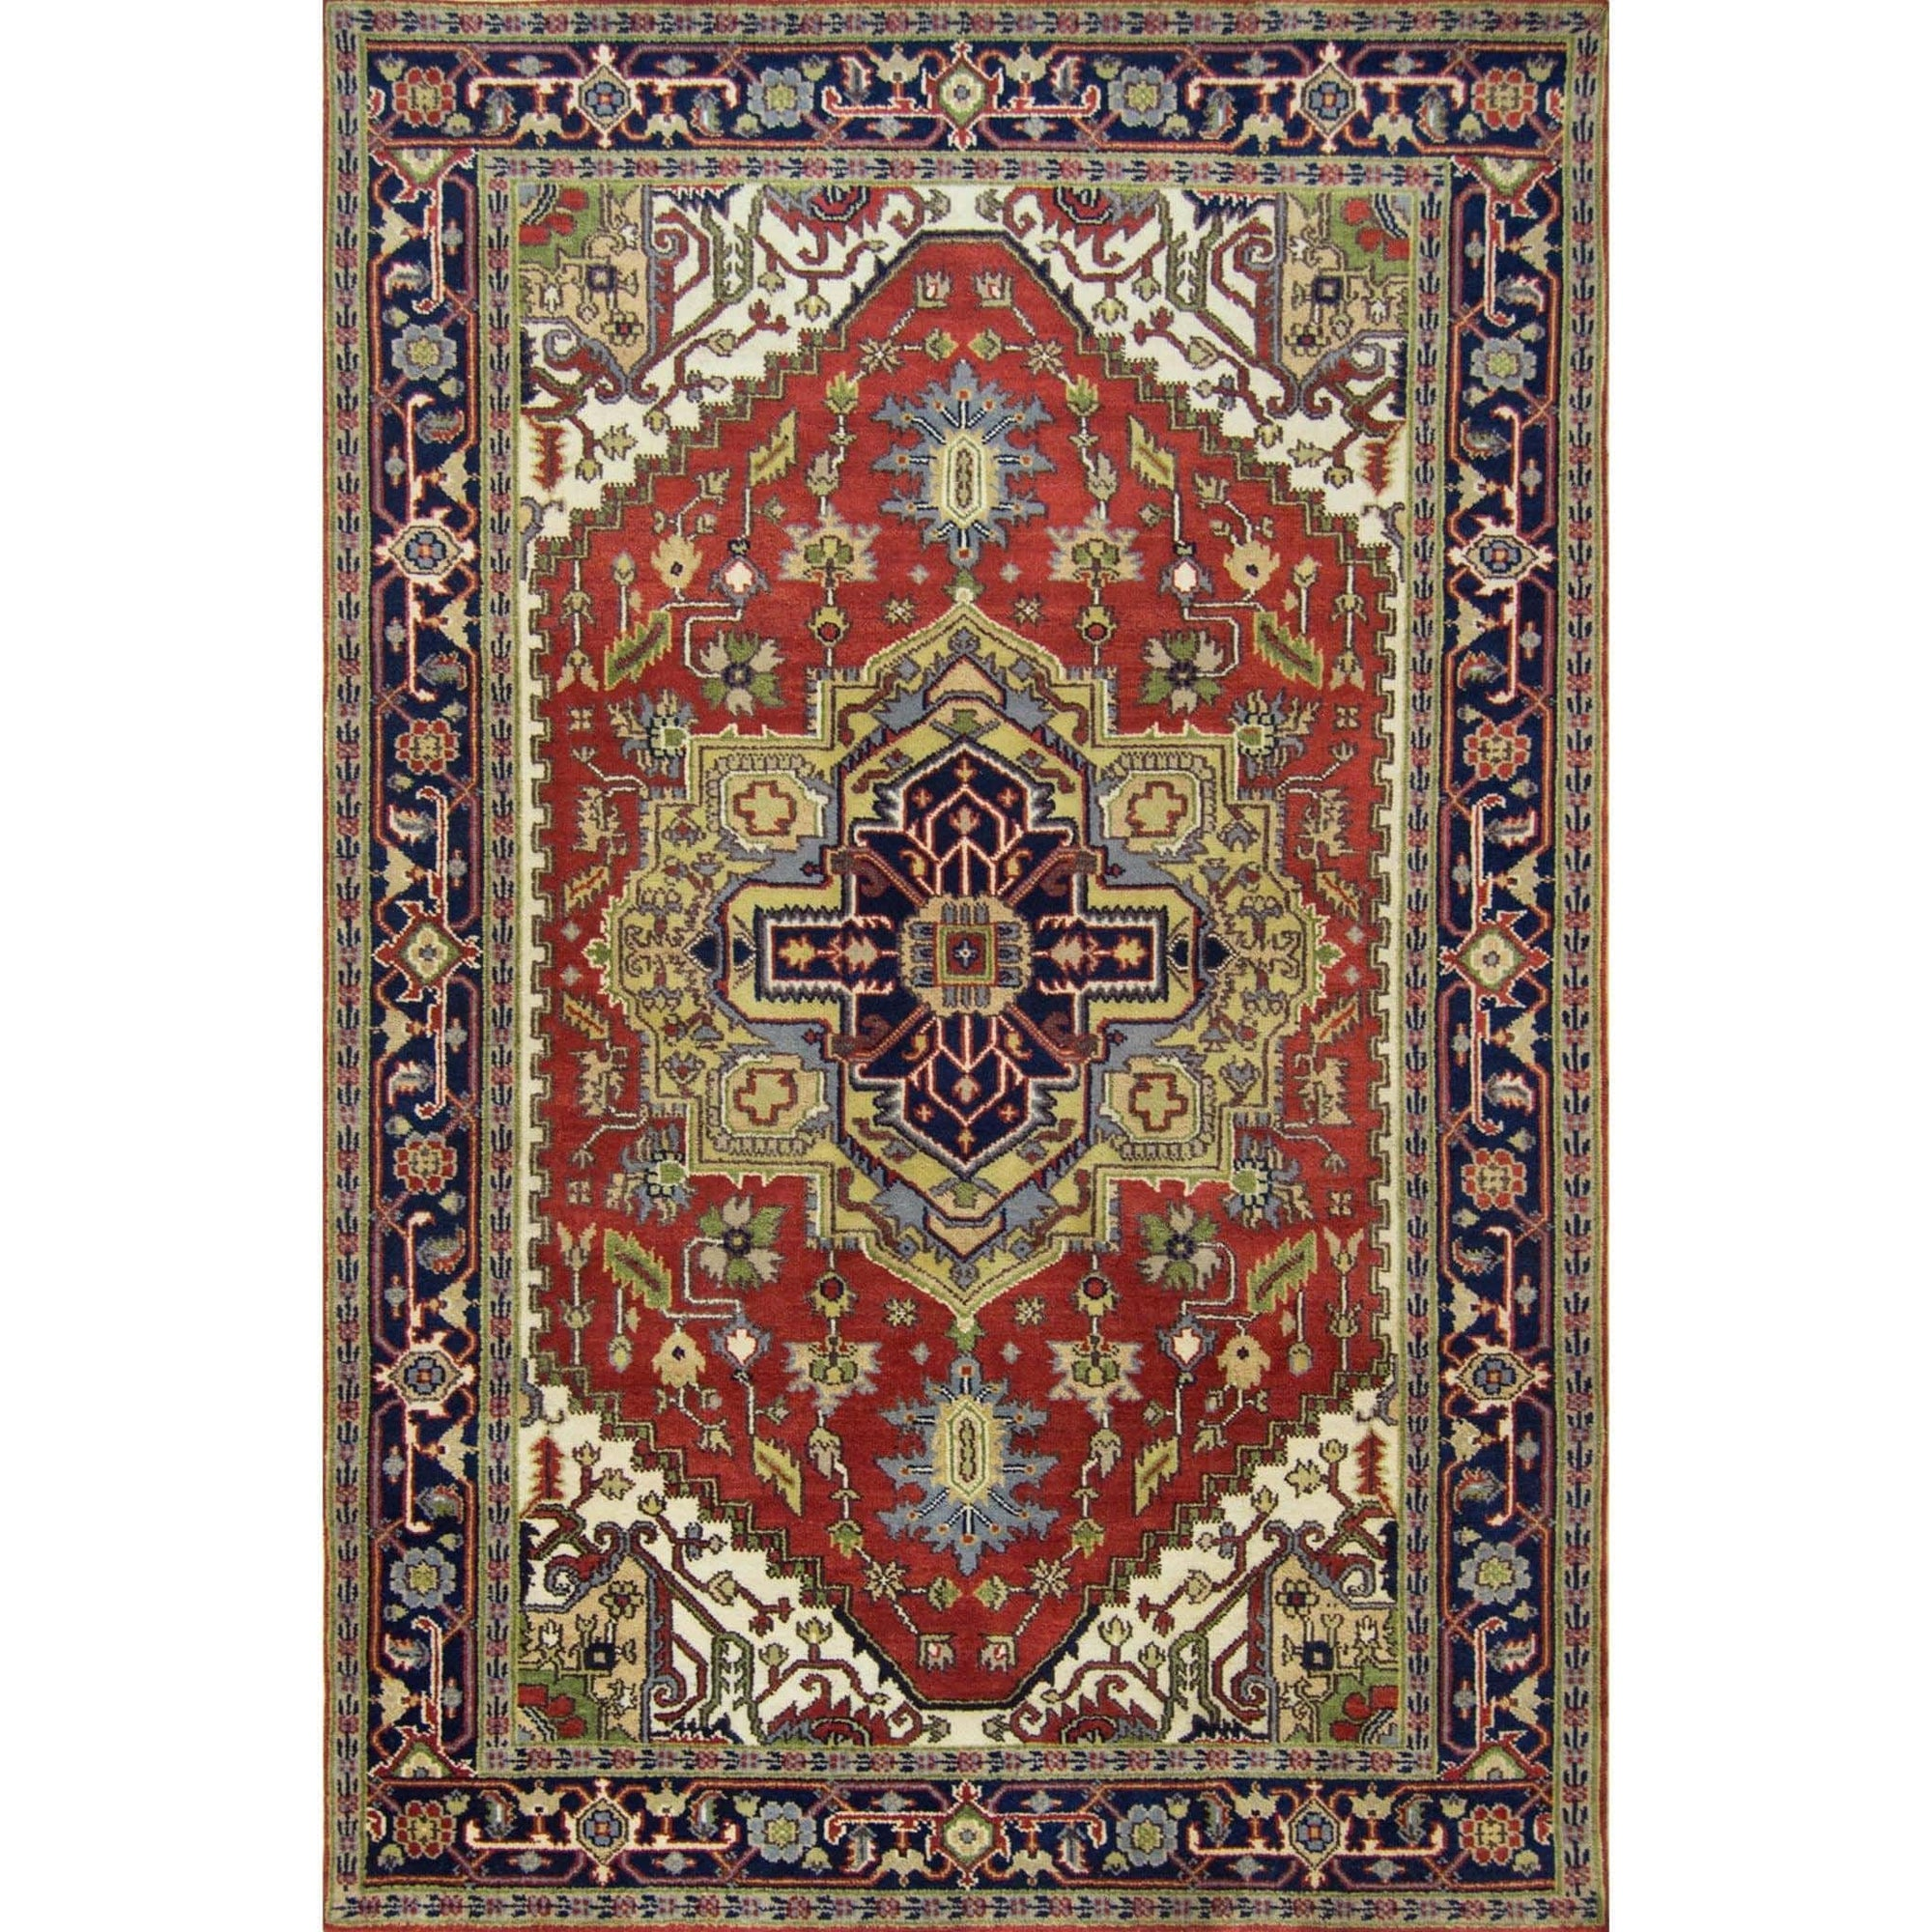 Hand-knotted Wool Heriz Rug 181cm x 272cm Persian-Rug | House-of-Haghi | NewMarket | Auckland | NZ | Handmade Persian Rugs | Hand Knotted Persian Rugs